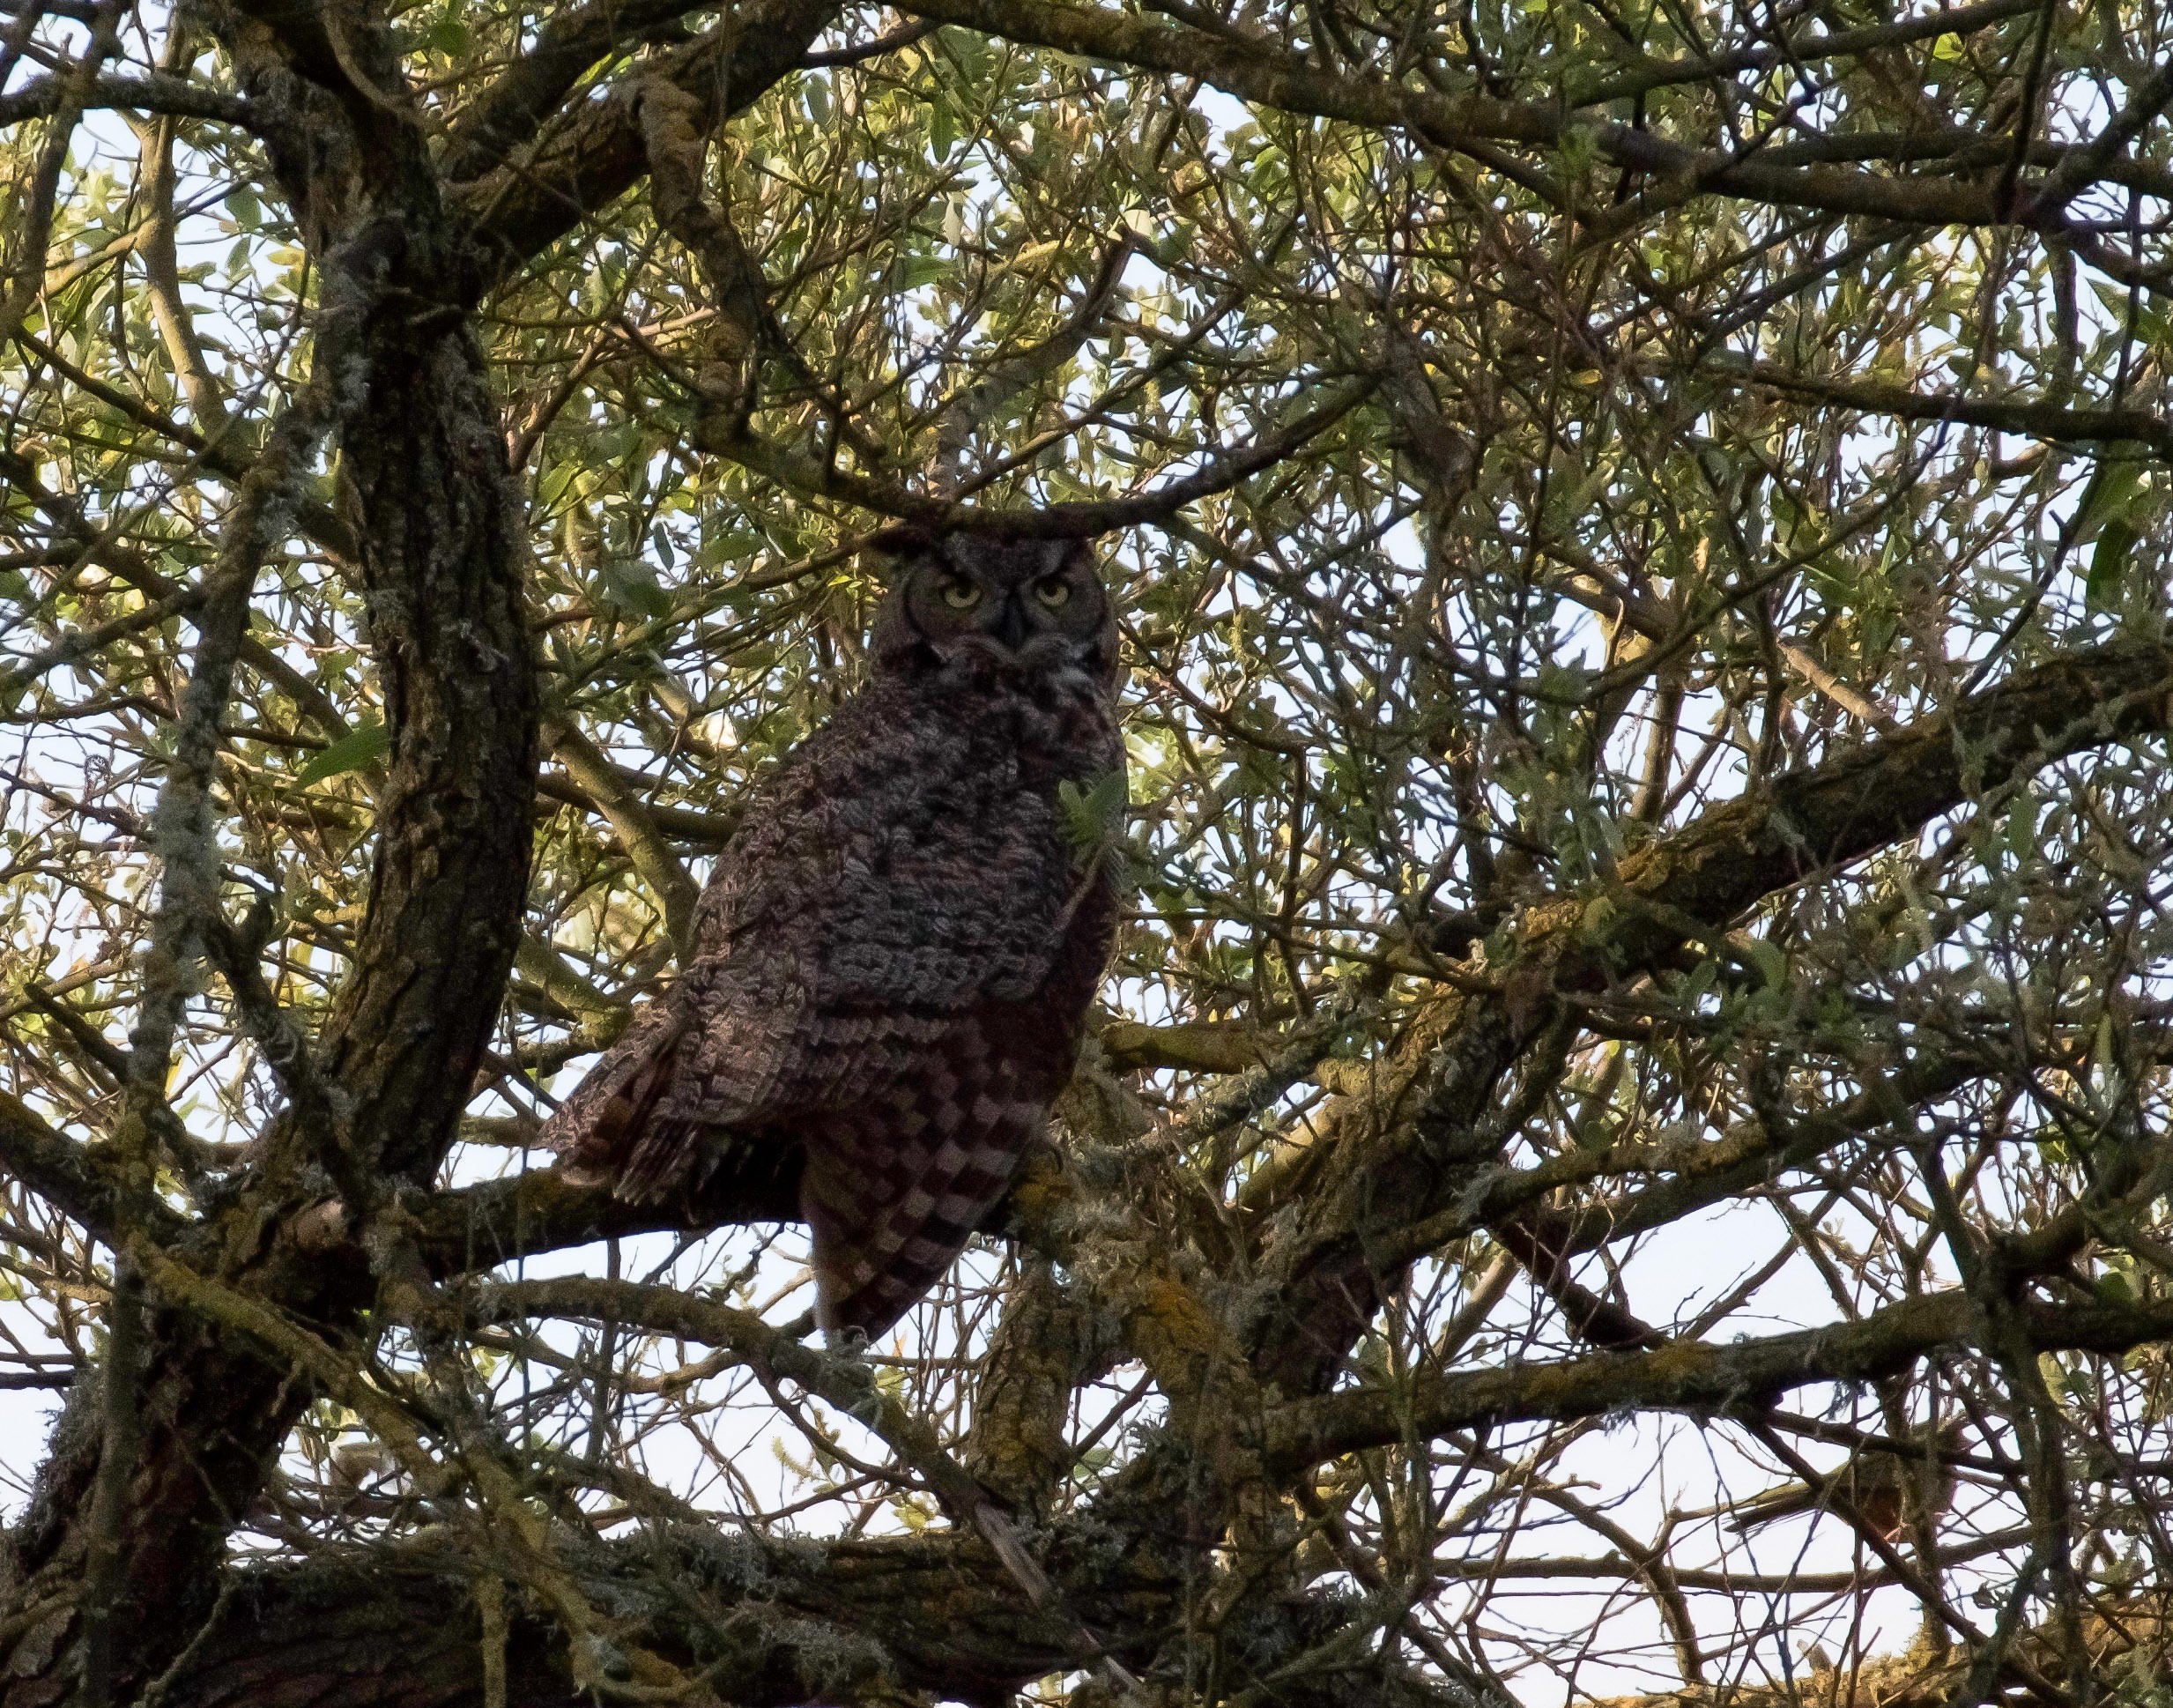 A great horned owl perched in the shade of a large willow tree